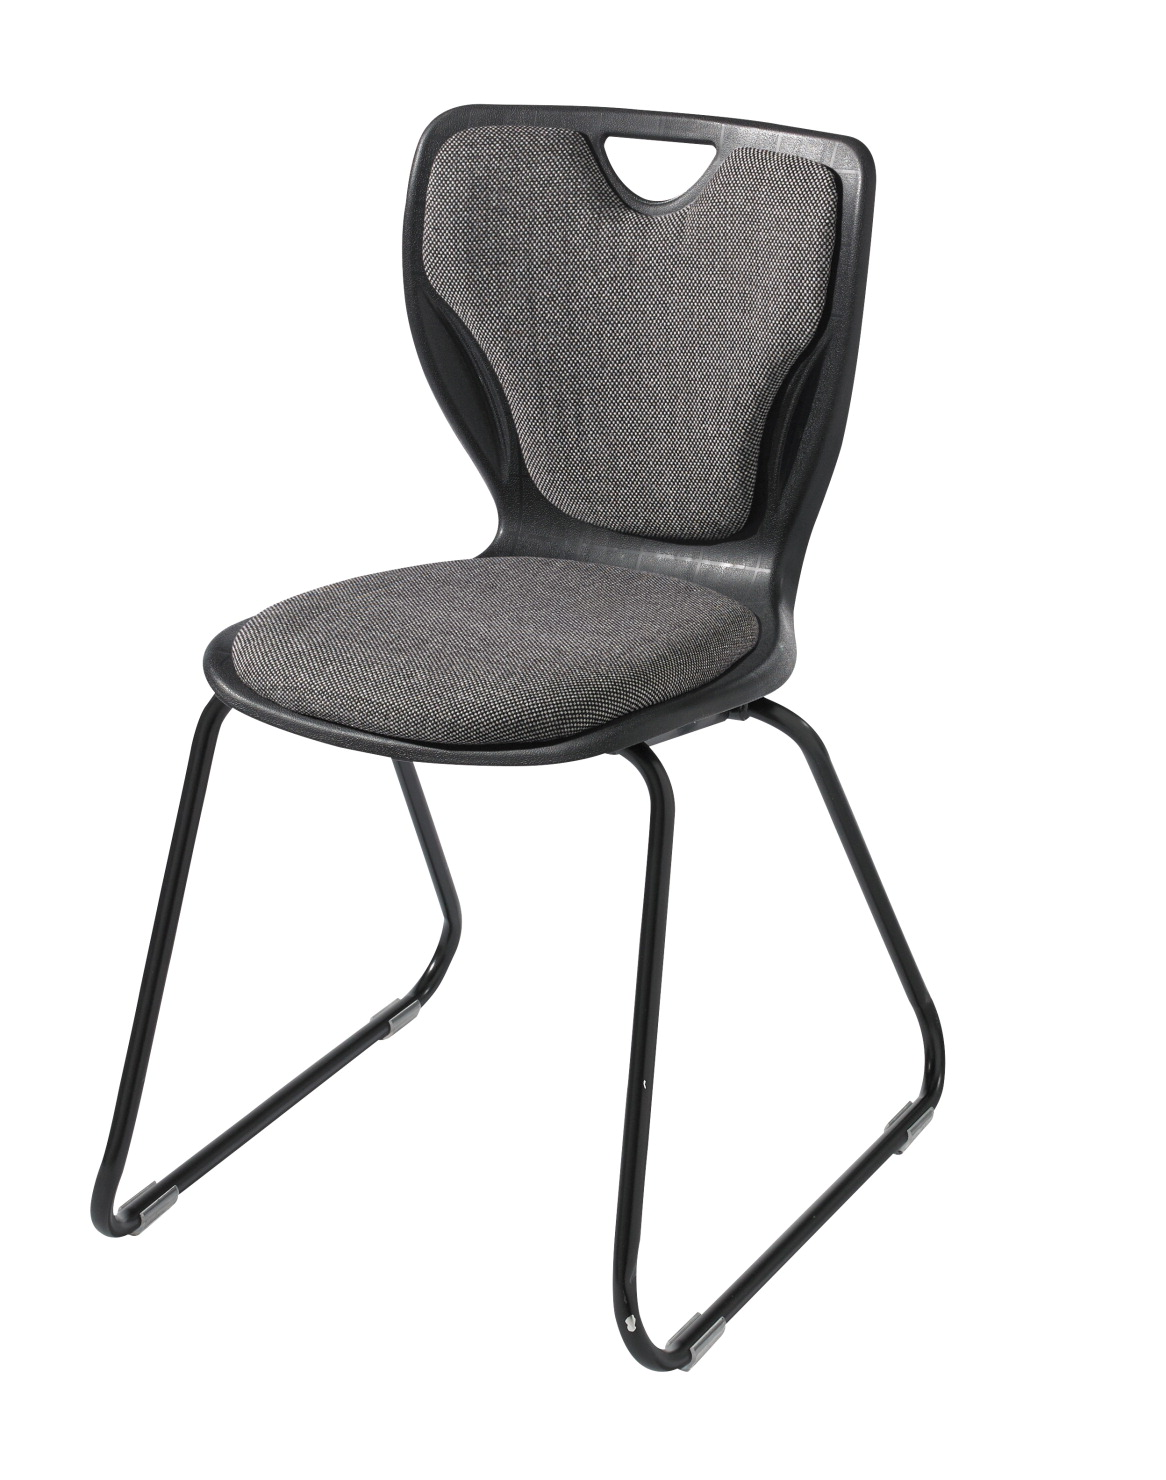 classroom select padded contemporary sled base chair with felt glides